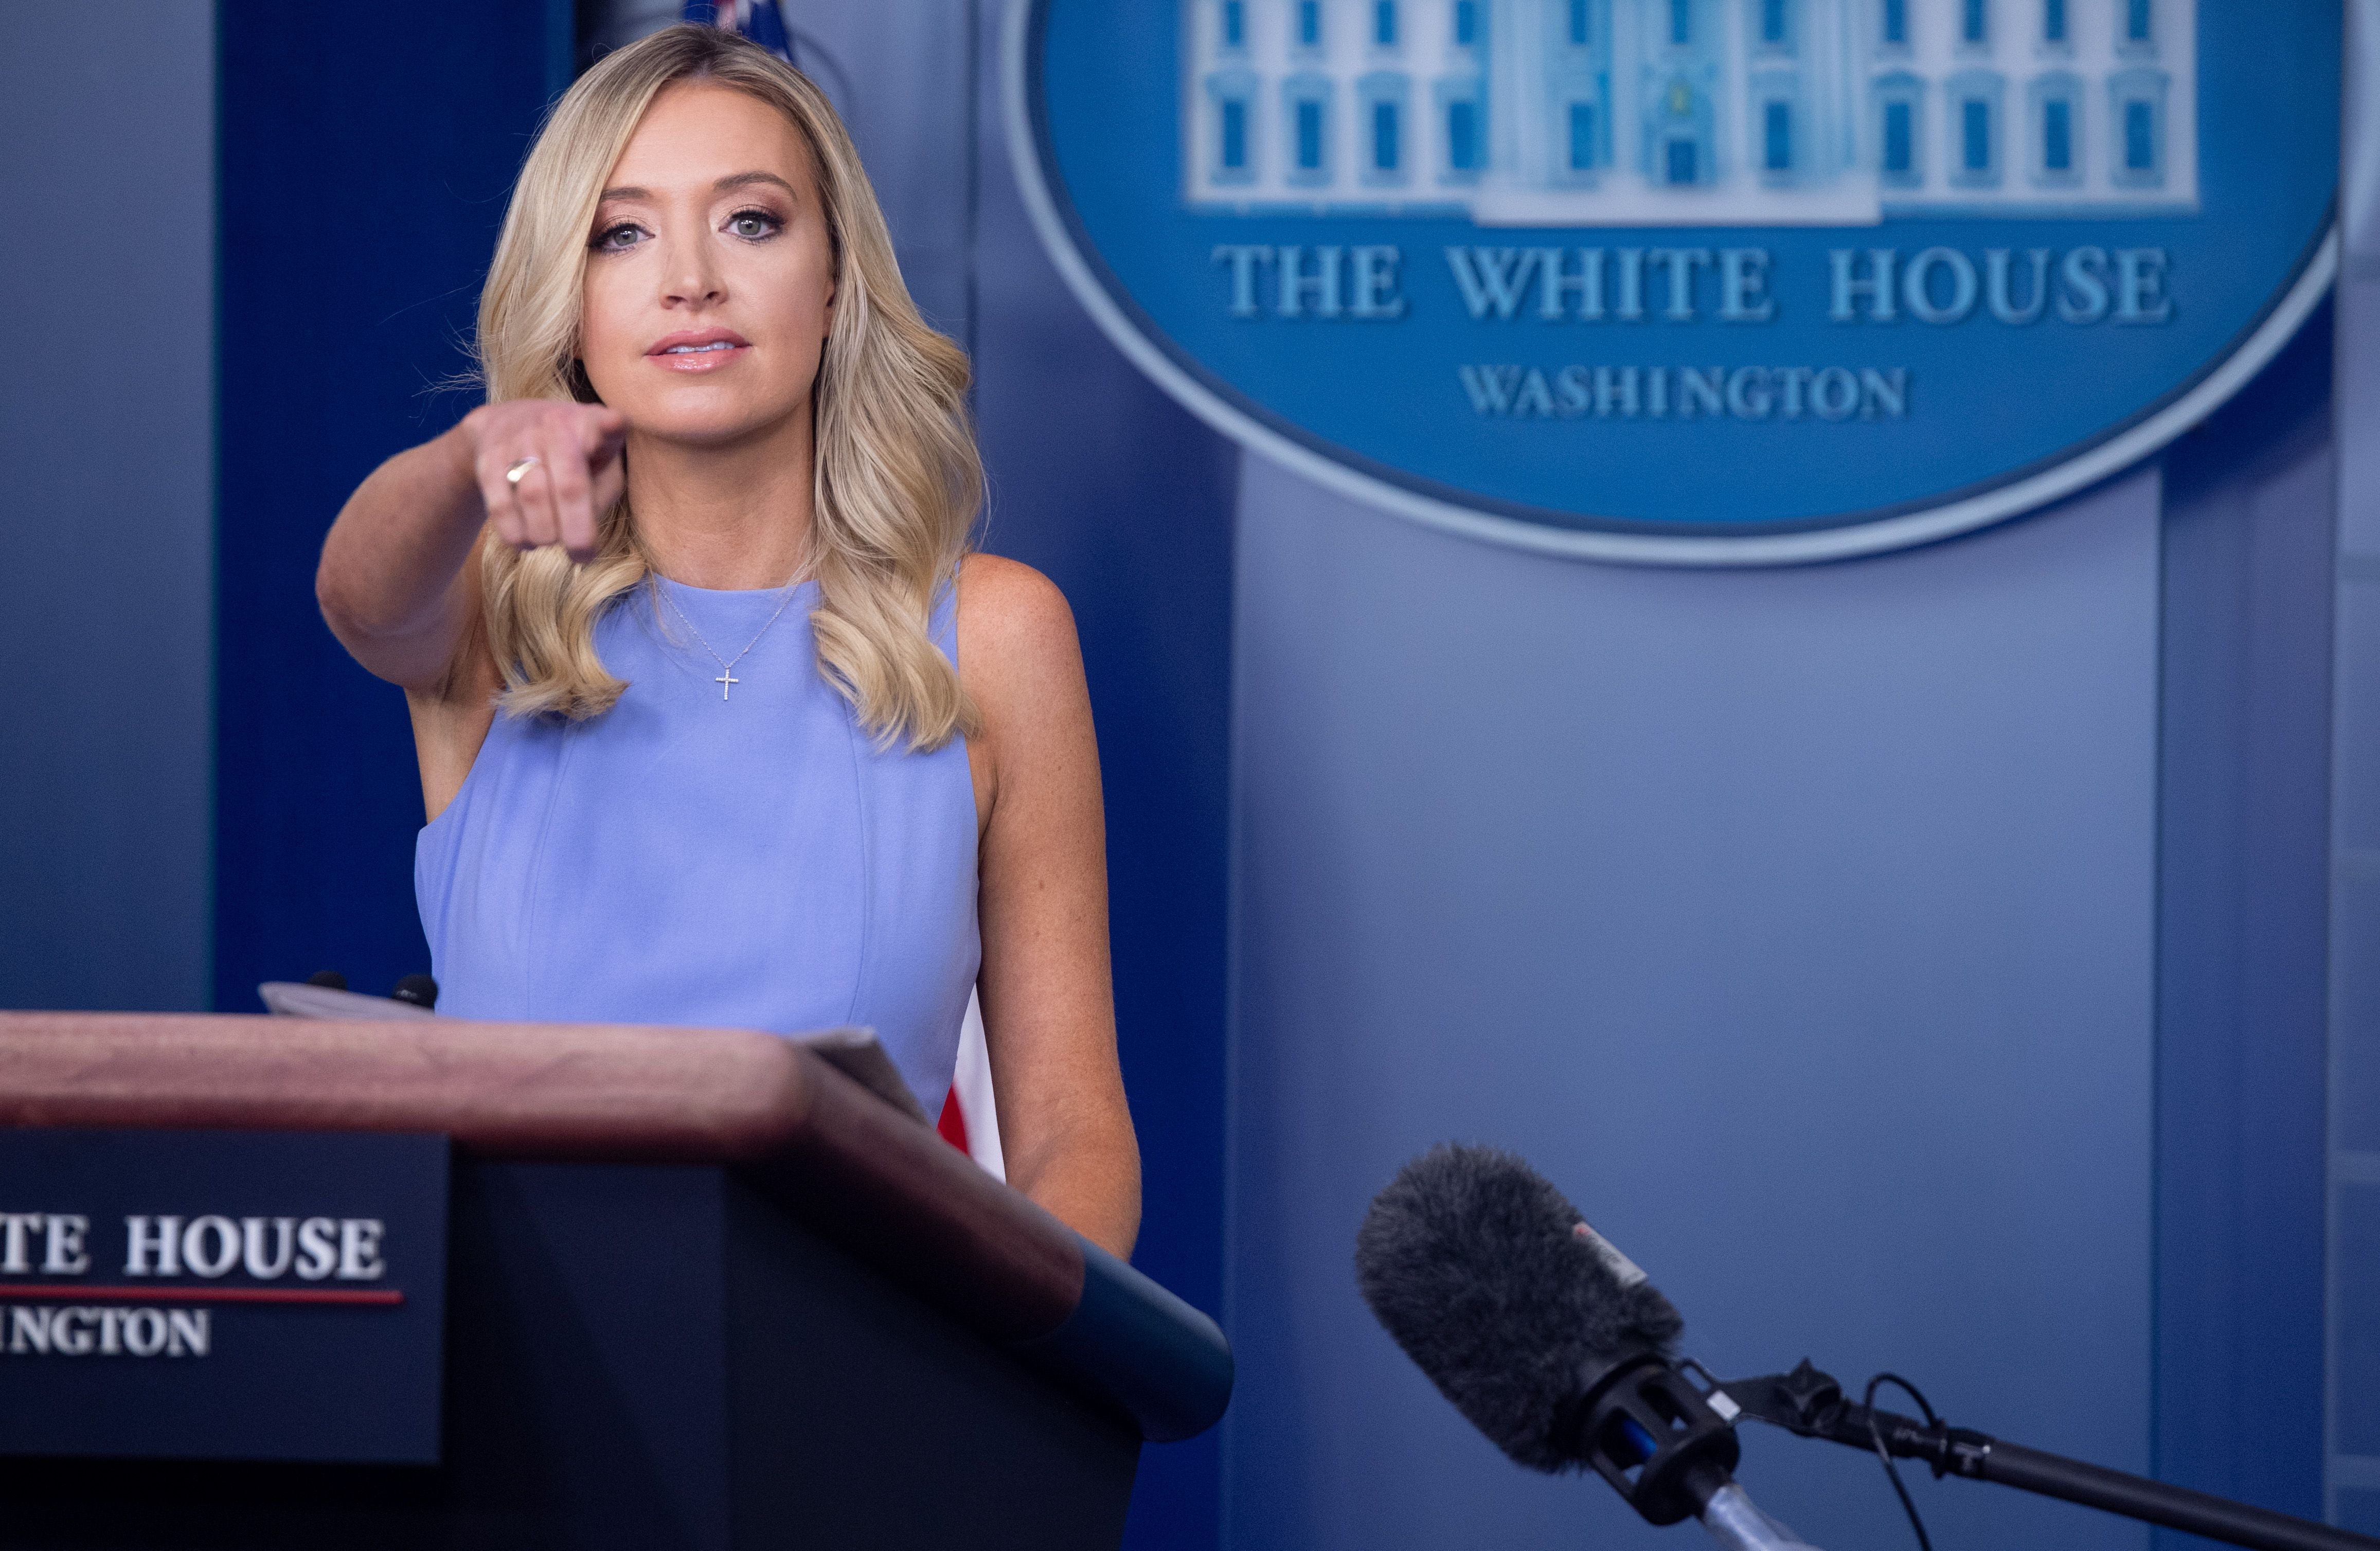 White House Press Secretary Kayleigh McEnany holds a press briefing at the White House in Washington, DC, June 17, 2020. (Photo by SAUL LOEB / AFP) (Photo by SAUL LOEB/AFP via Getty Images)